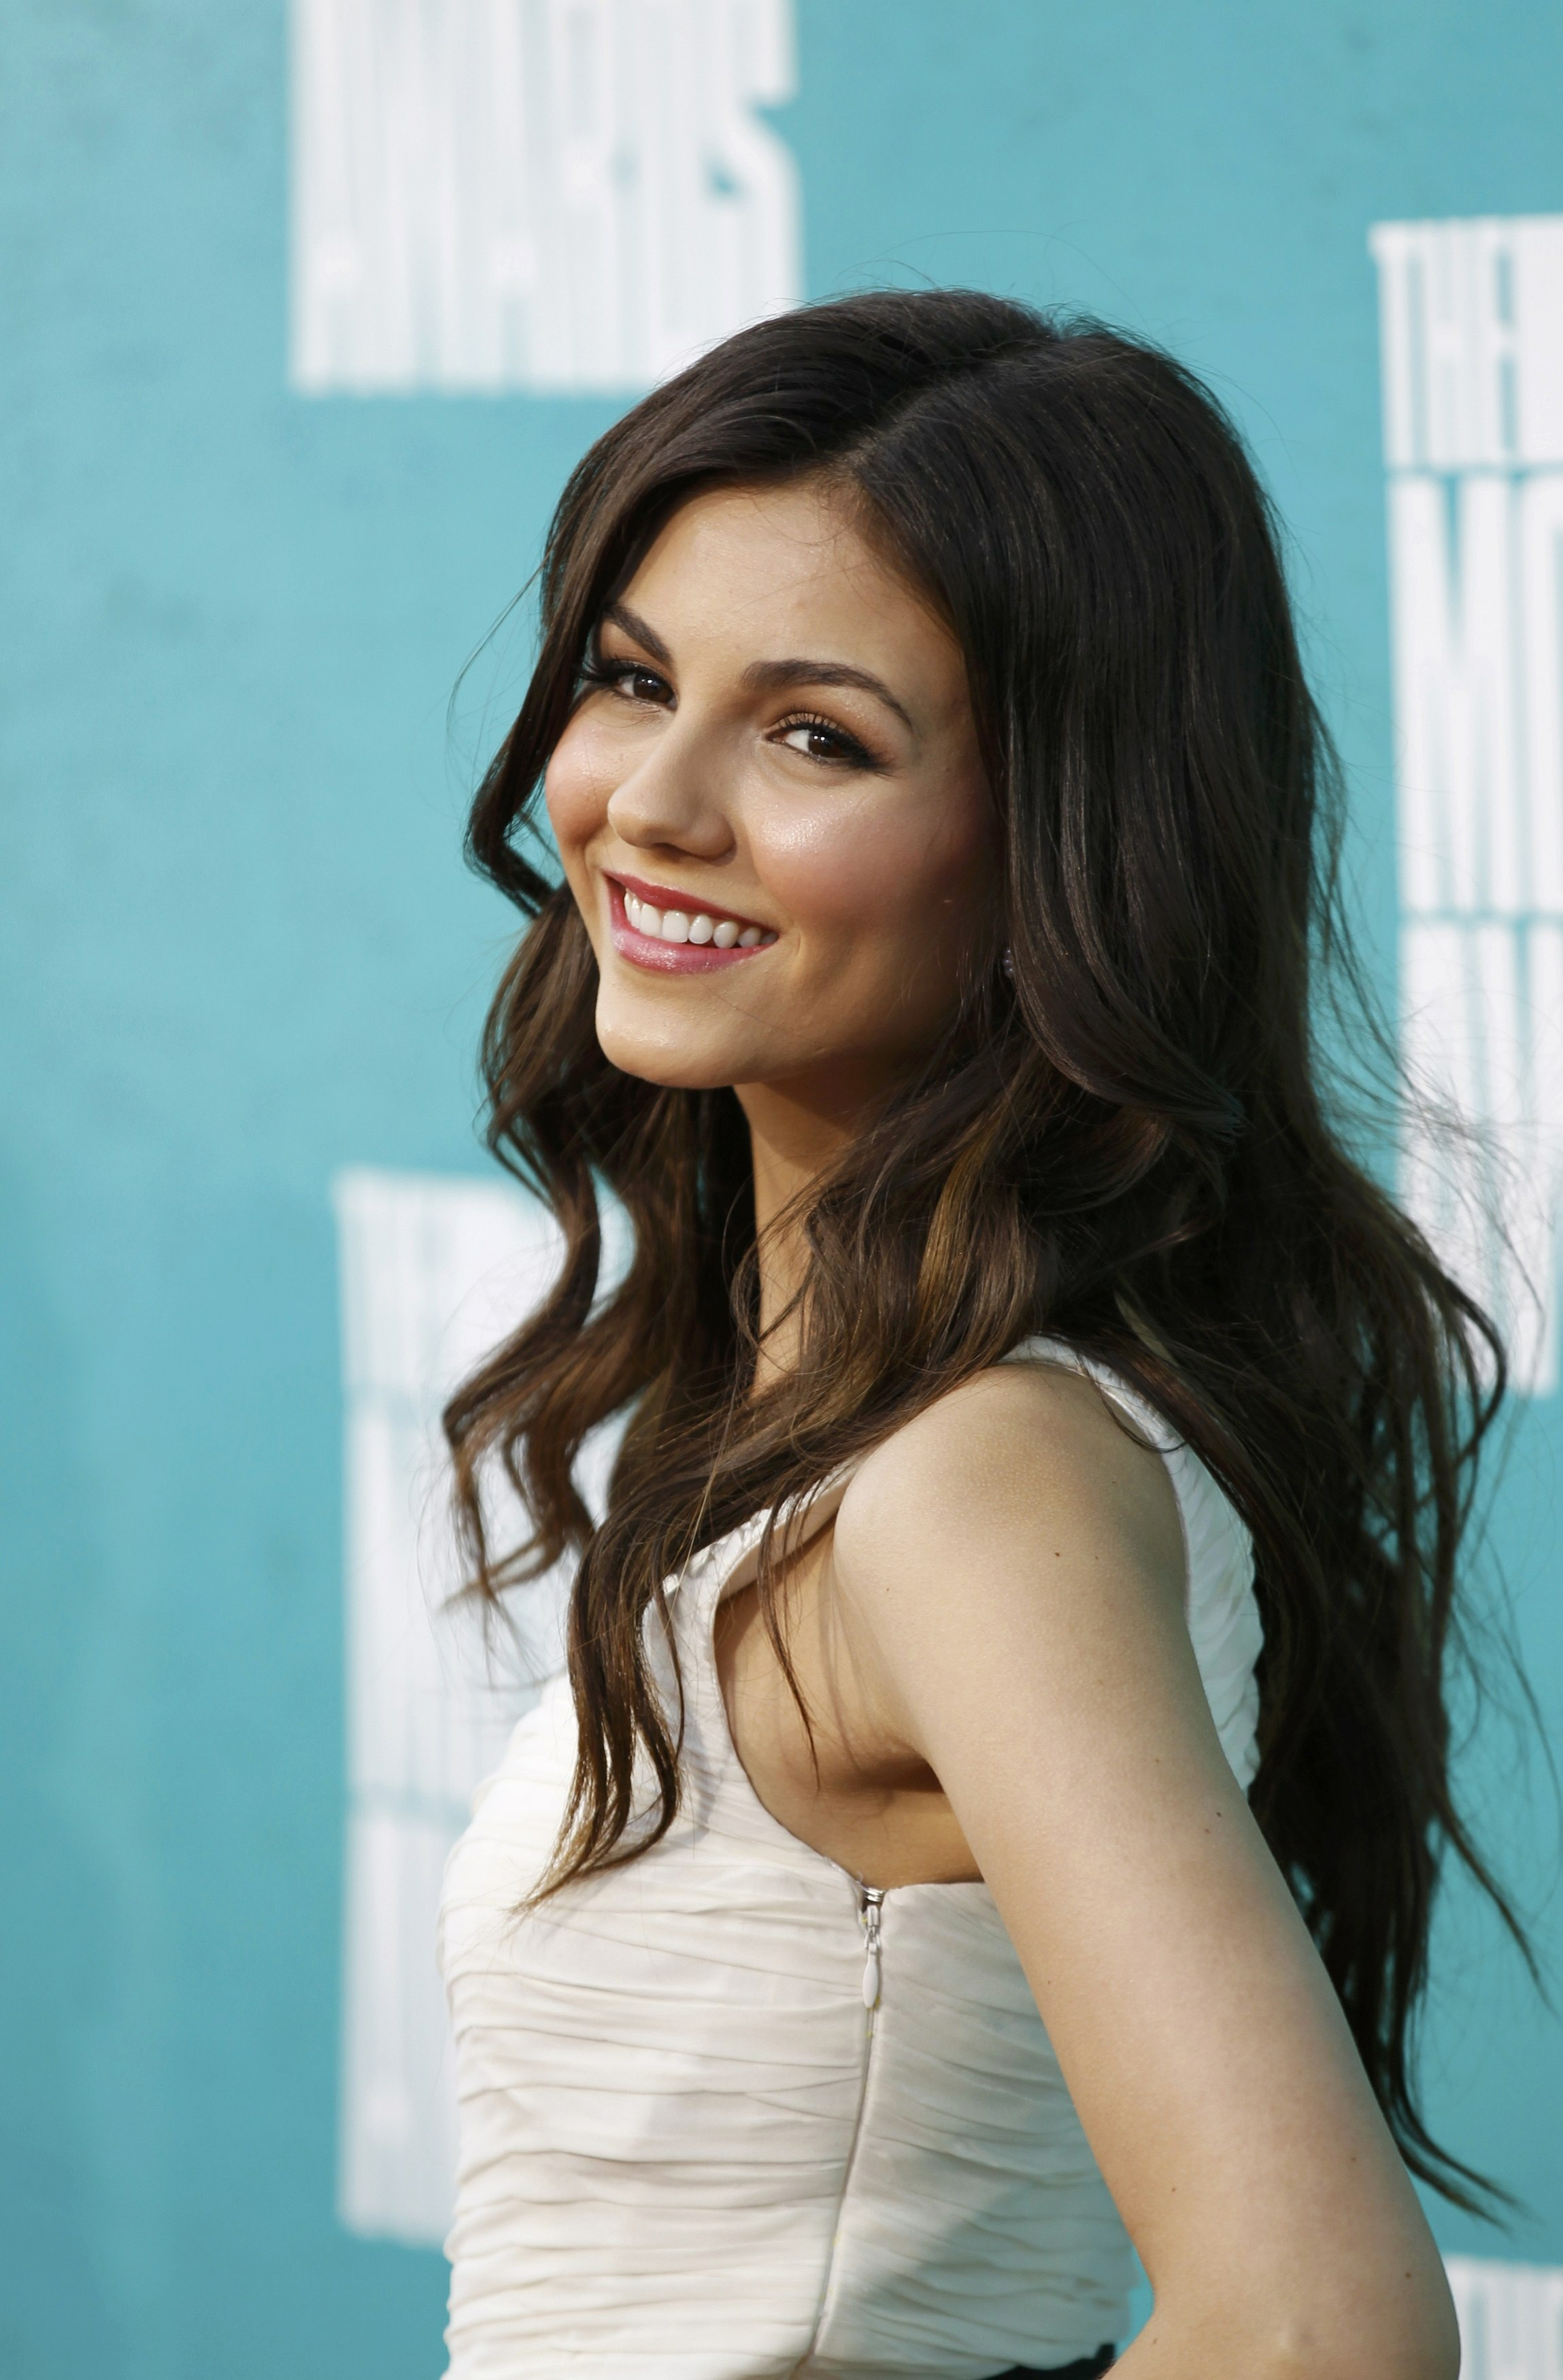 Виктория Джастис - Victoria Justice фото №519347: http://www.theplace.ru/photos/photo.php?id=519347